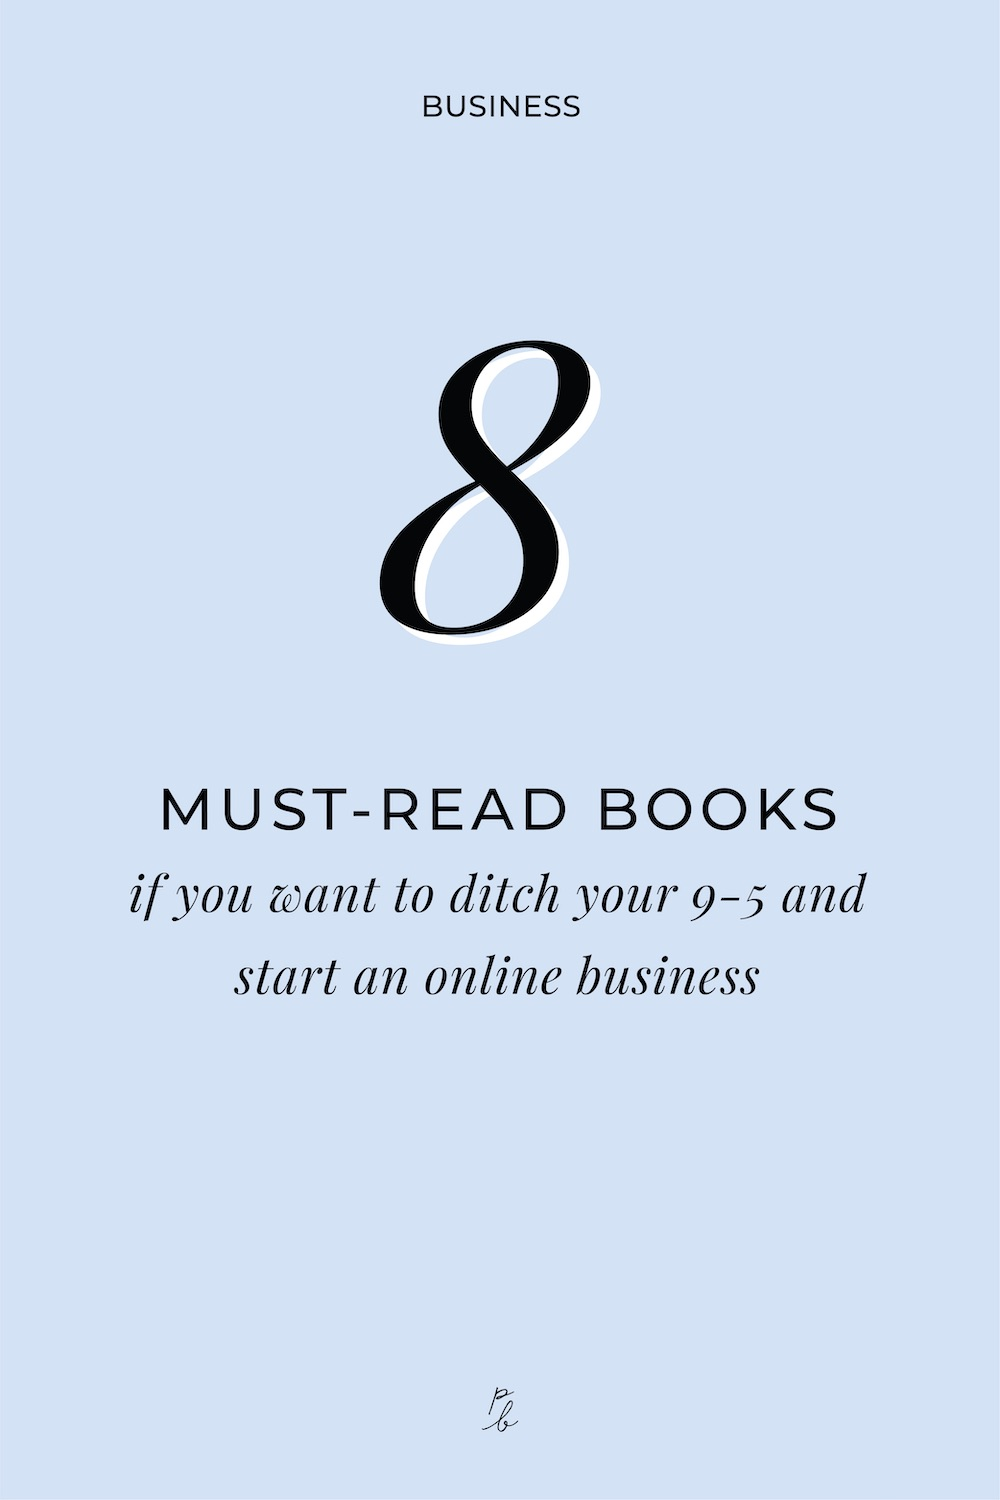 3-8 must read books if you want to ditch your 9-5 and start an online business.jpg